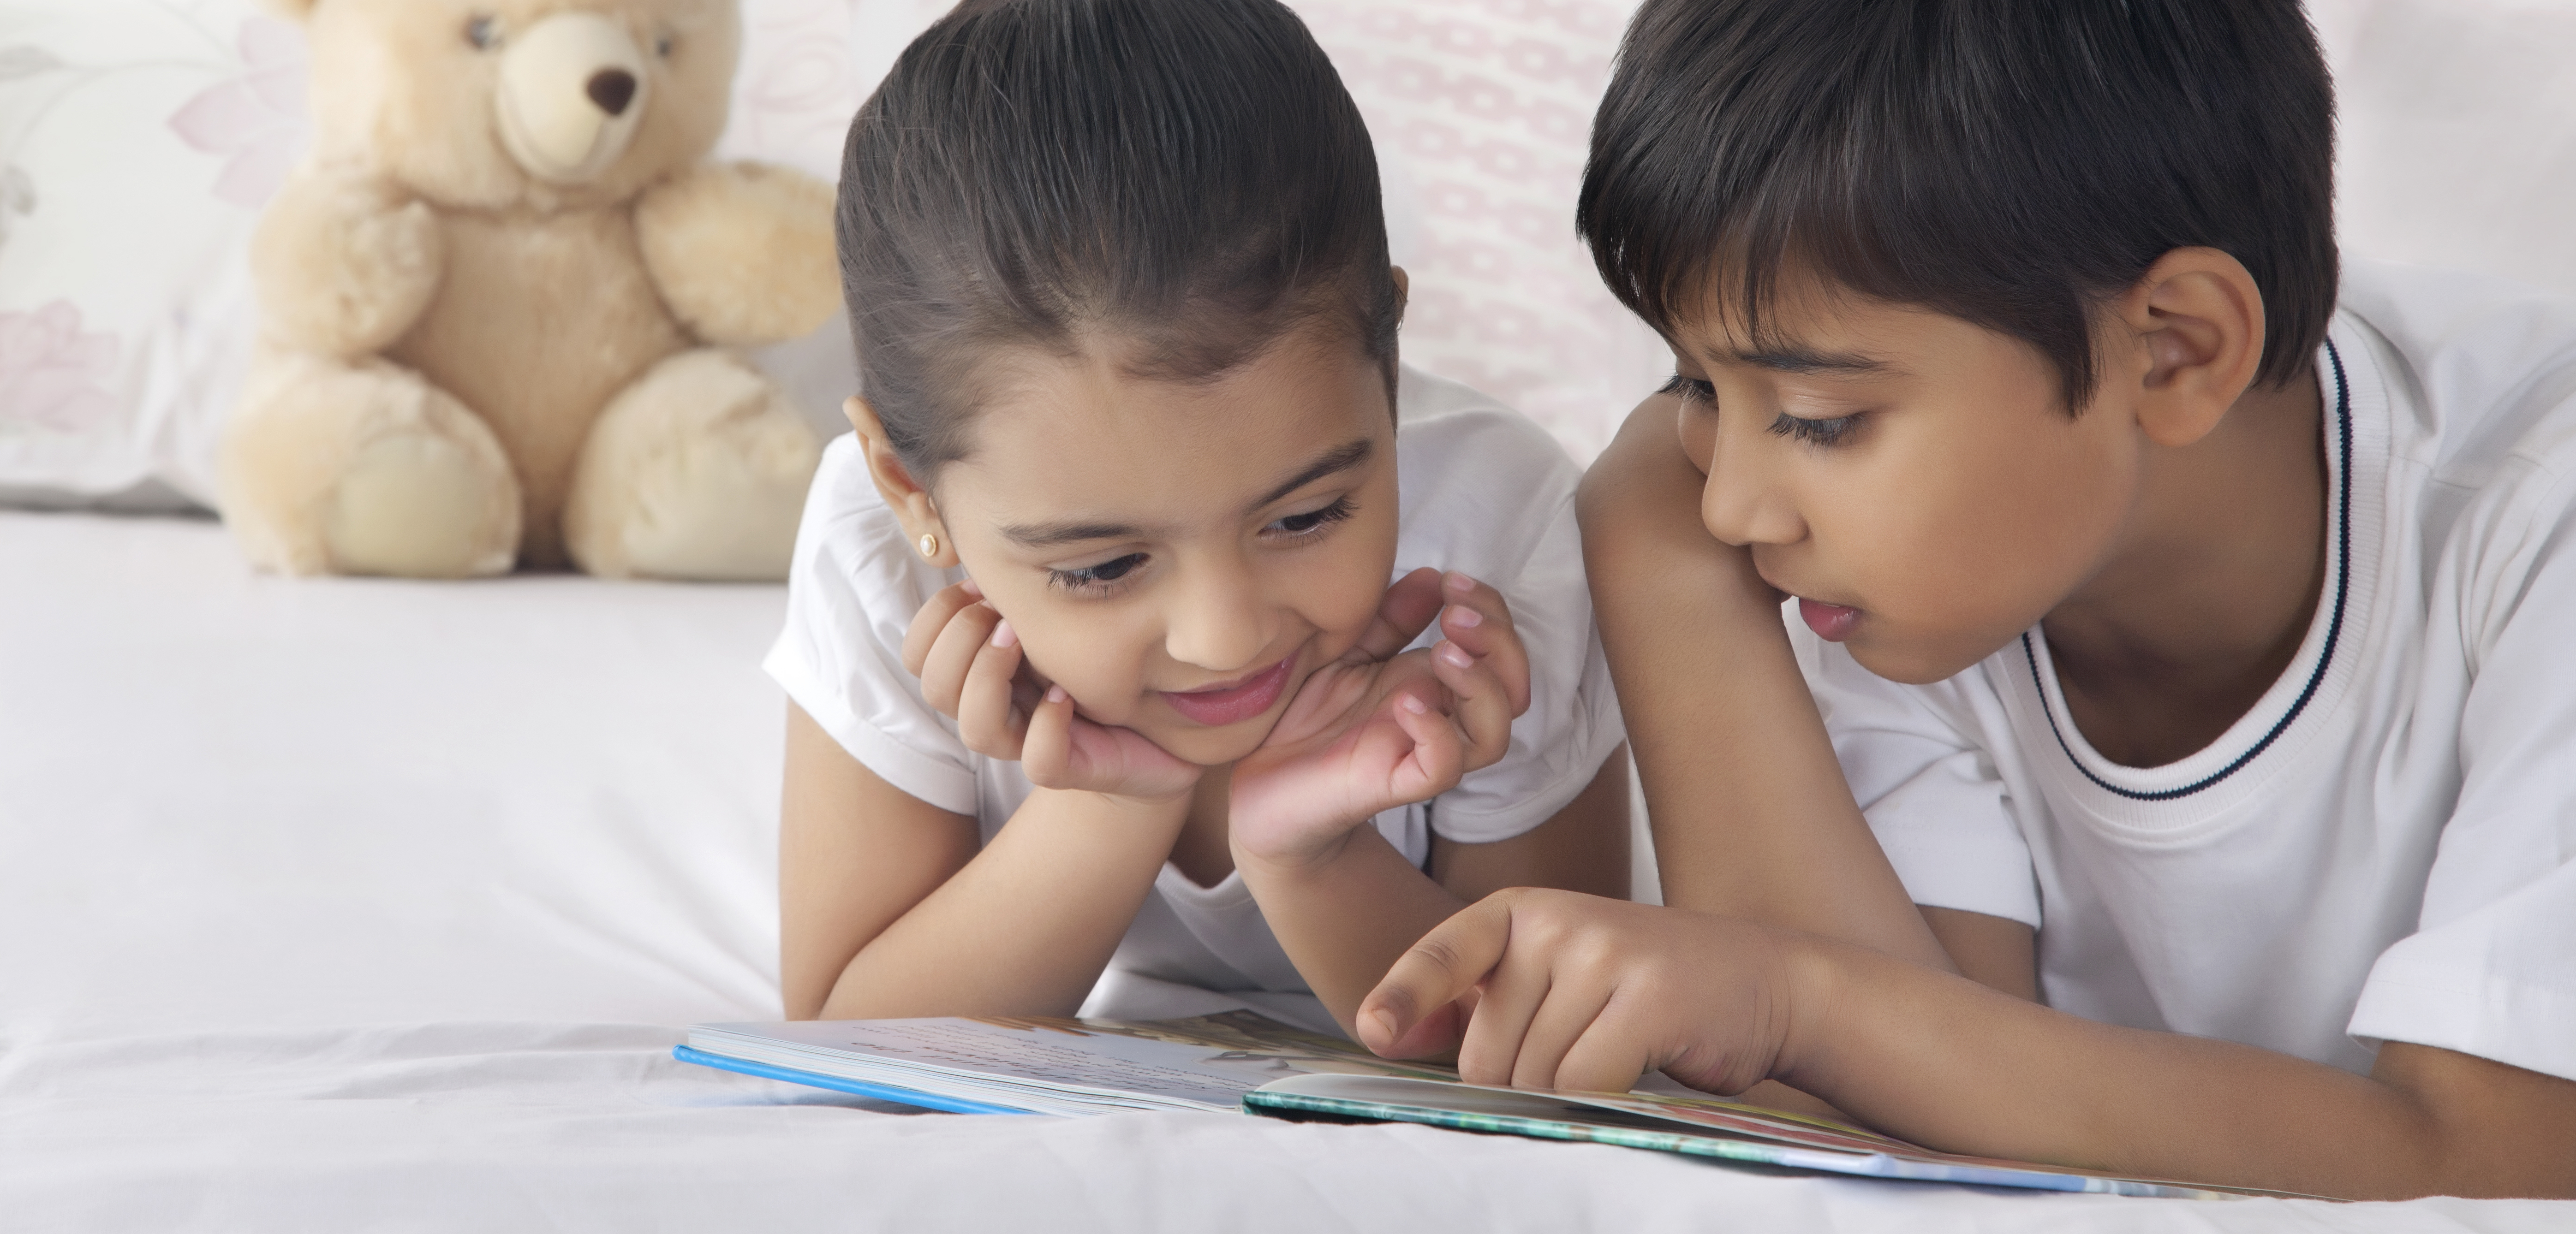 'Why do older siblings do better on IQ tests than their younger counterparts?' Oxford interview questions explained